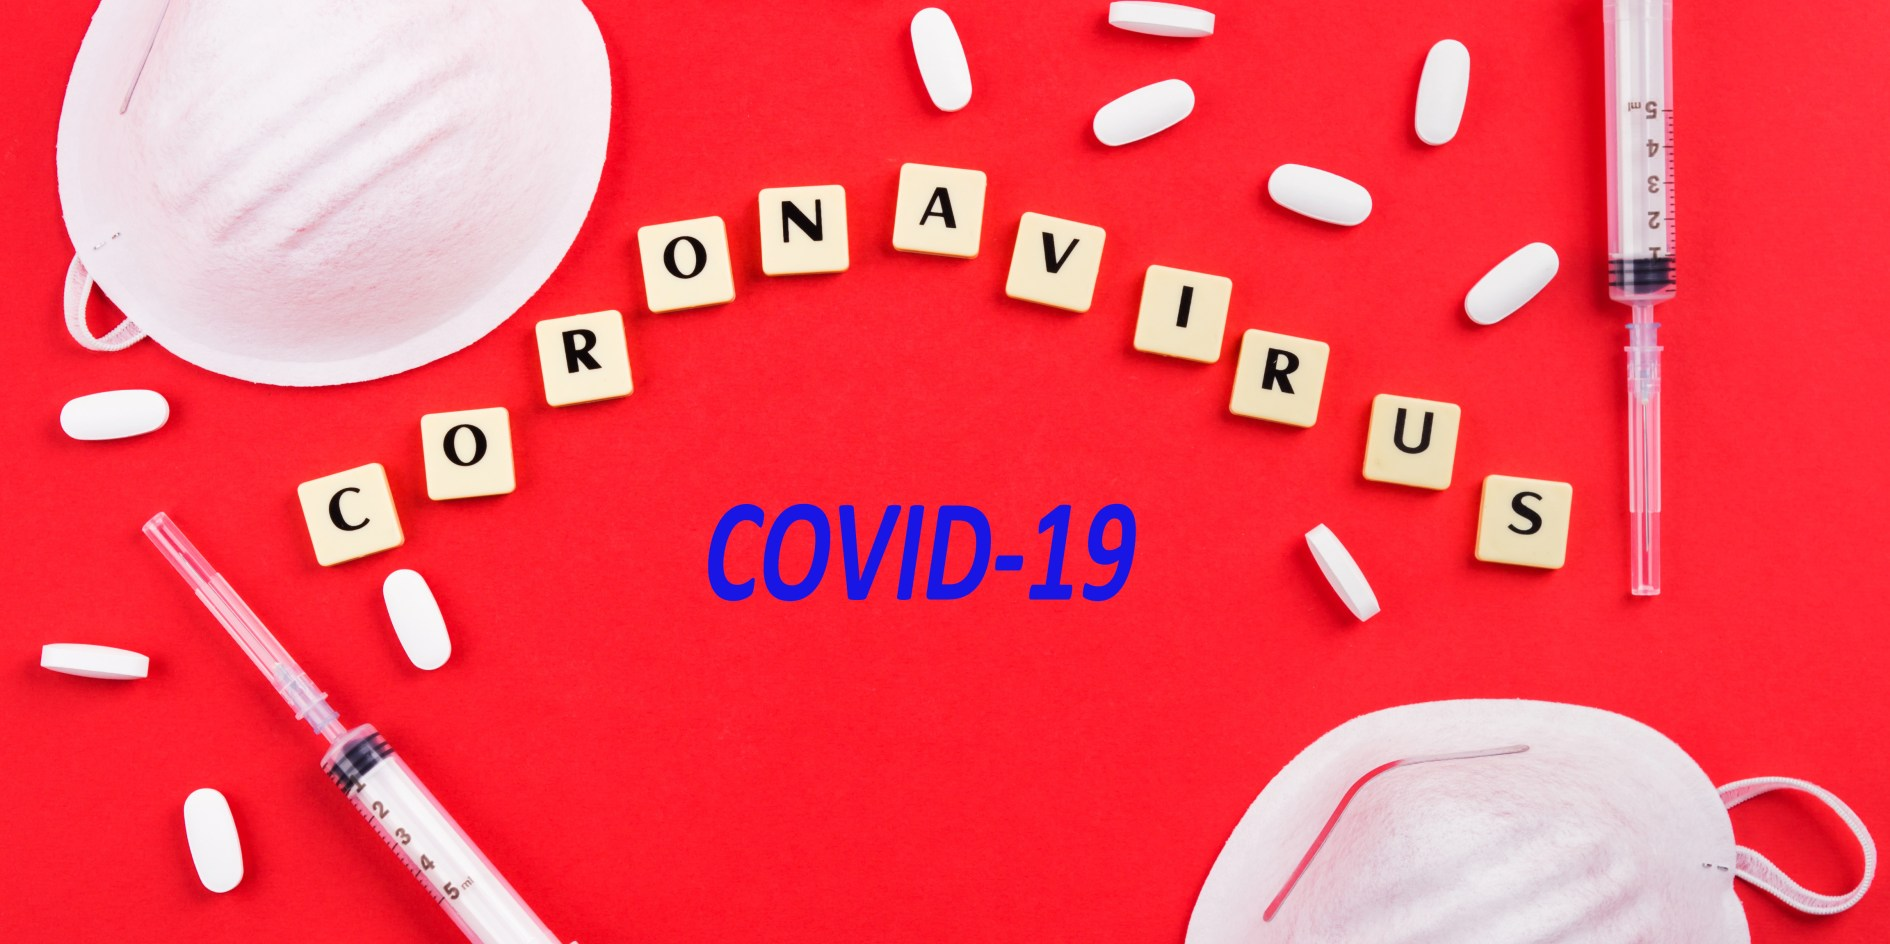 Novel coronavirus 2019 from Wuhan, China, named Covid-19. Epidemic danger prevention. Vaccine, treatment concept with masks, syringes and antibiotic pills and text in letter tiles. COVID-19 deaths concept. COVID-19 in India concept. COVID-19 infections illustration.